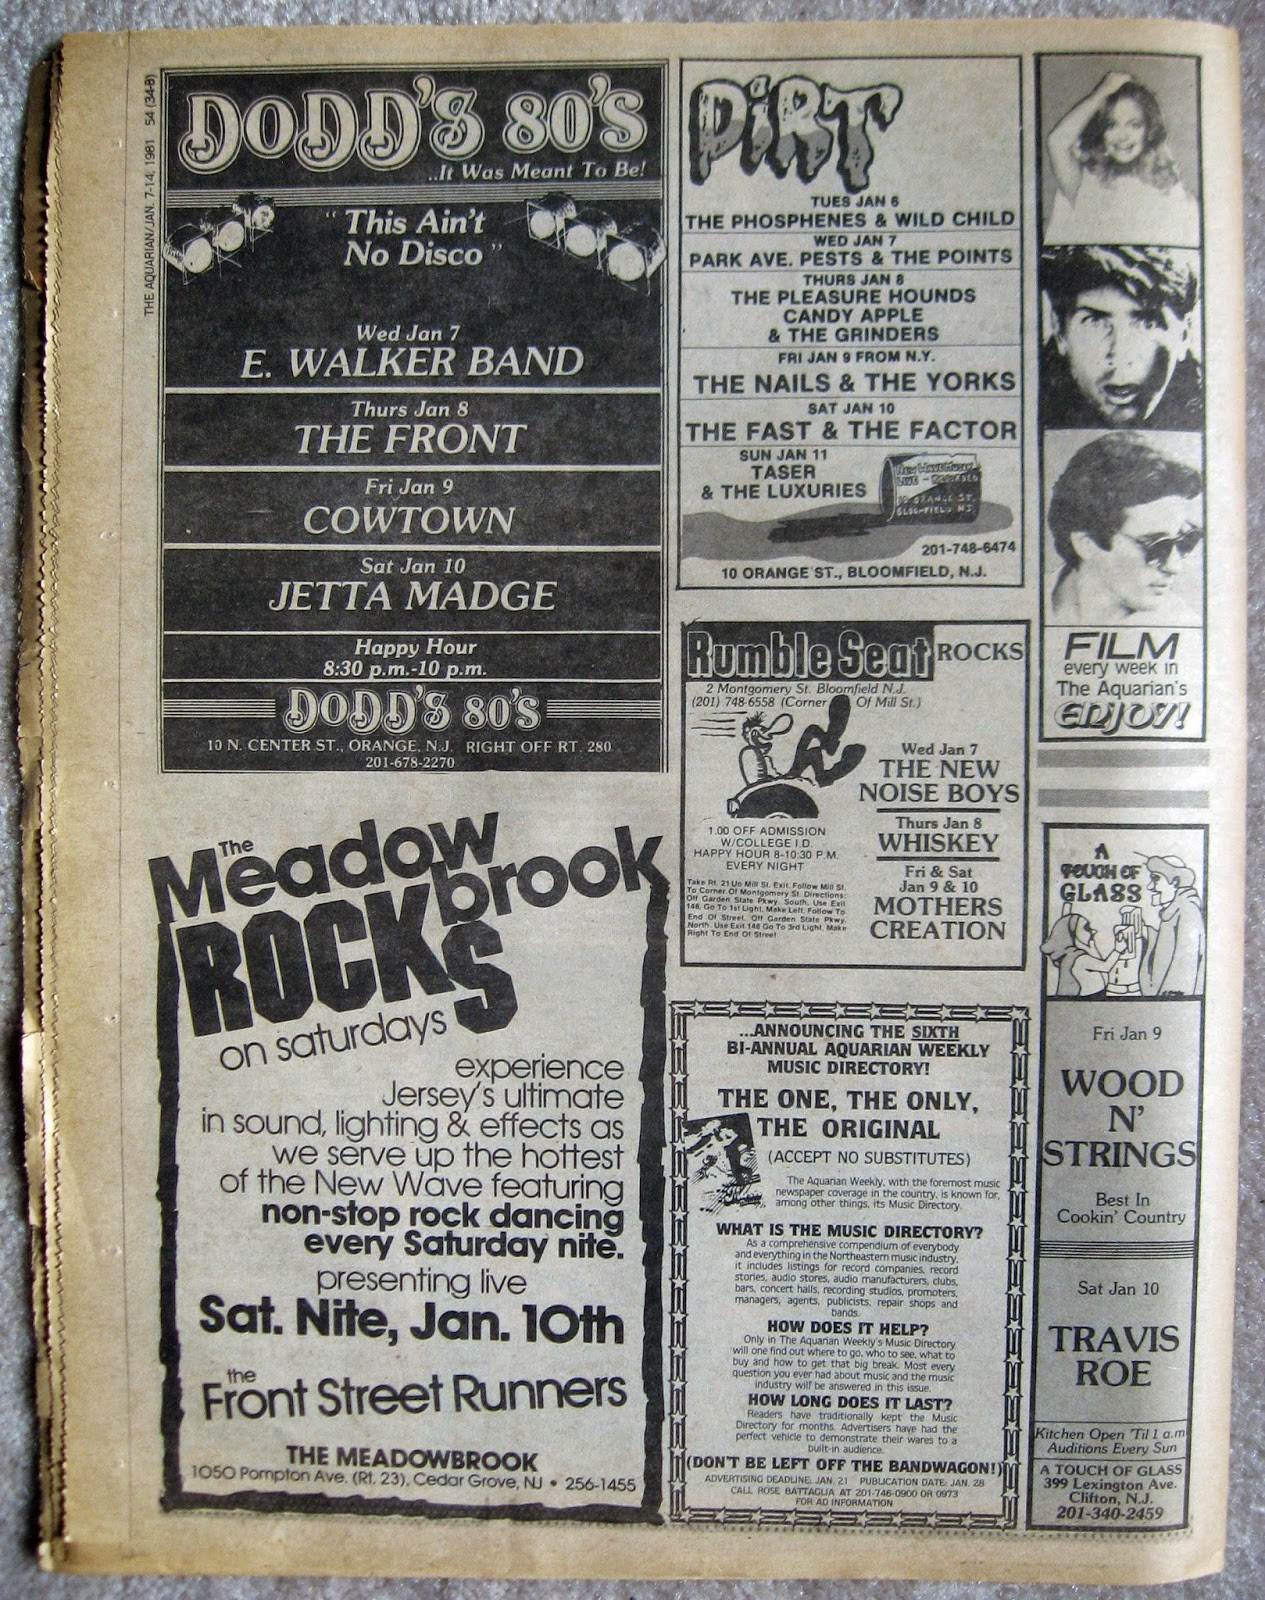 Dodd's 80's - The Meadowbrook - Dirt - Rumble Seat Rocks - A Touch Of Glass band line ups 1981